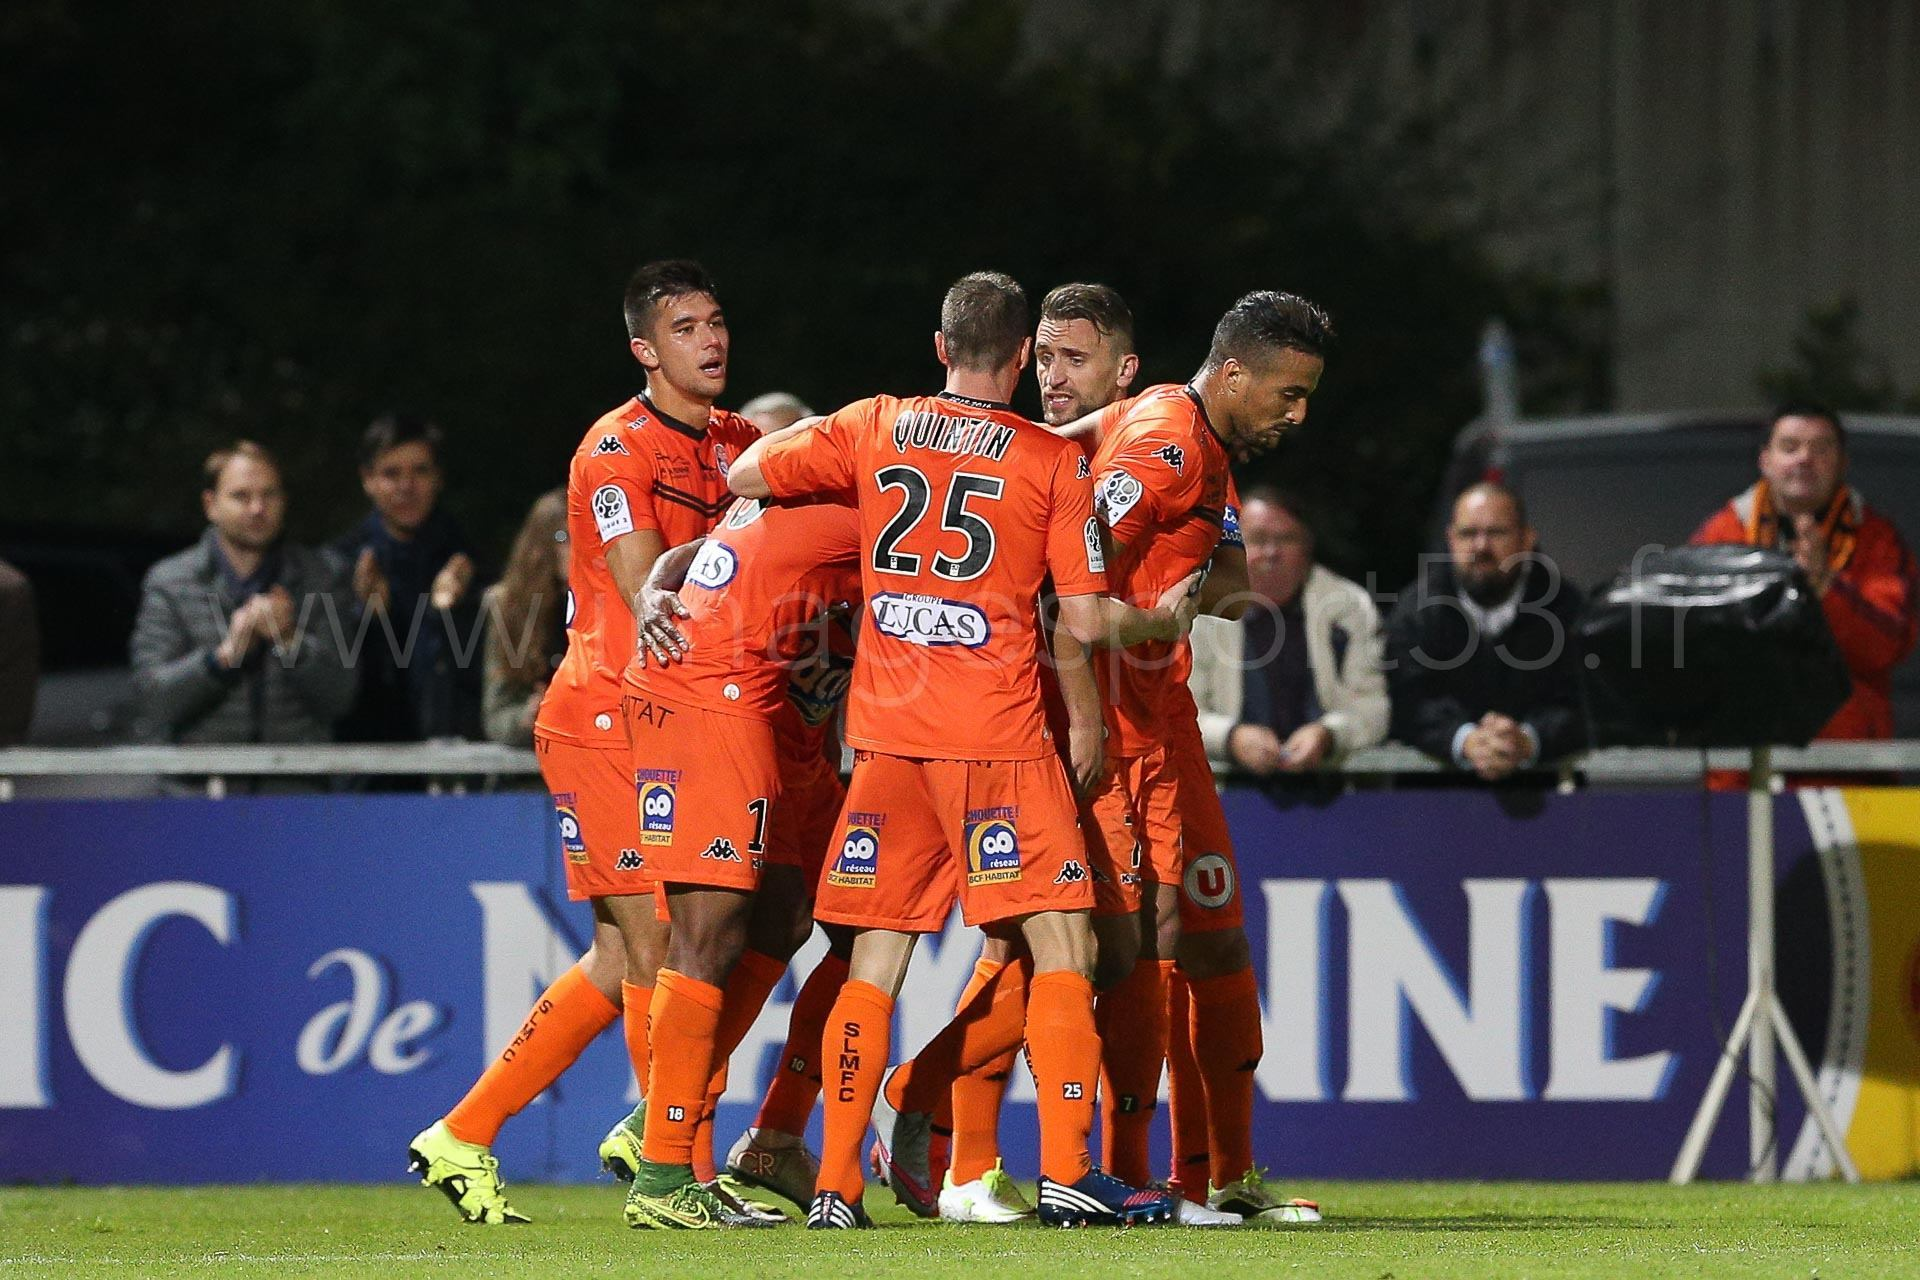 NG-Ligue2-1516-J12-Laval-Tours_16